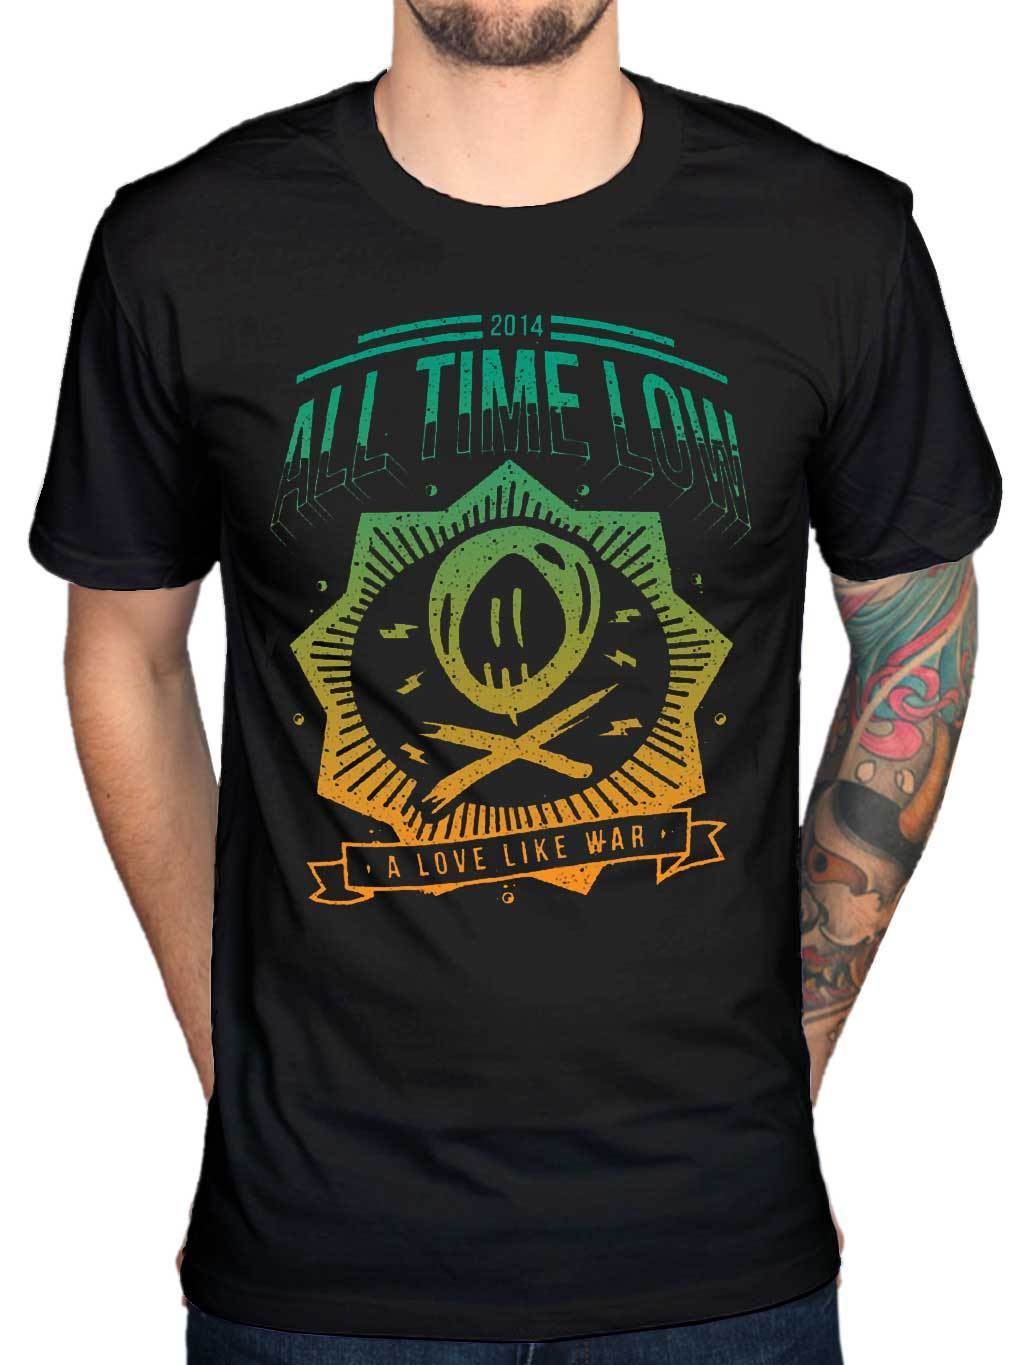 Official All Time Low New Wave T-Shirt A Love Like War Glamour Kills Panic Sale 100 % Cotton T Shirt TOP TEE